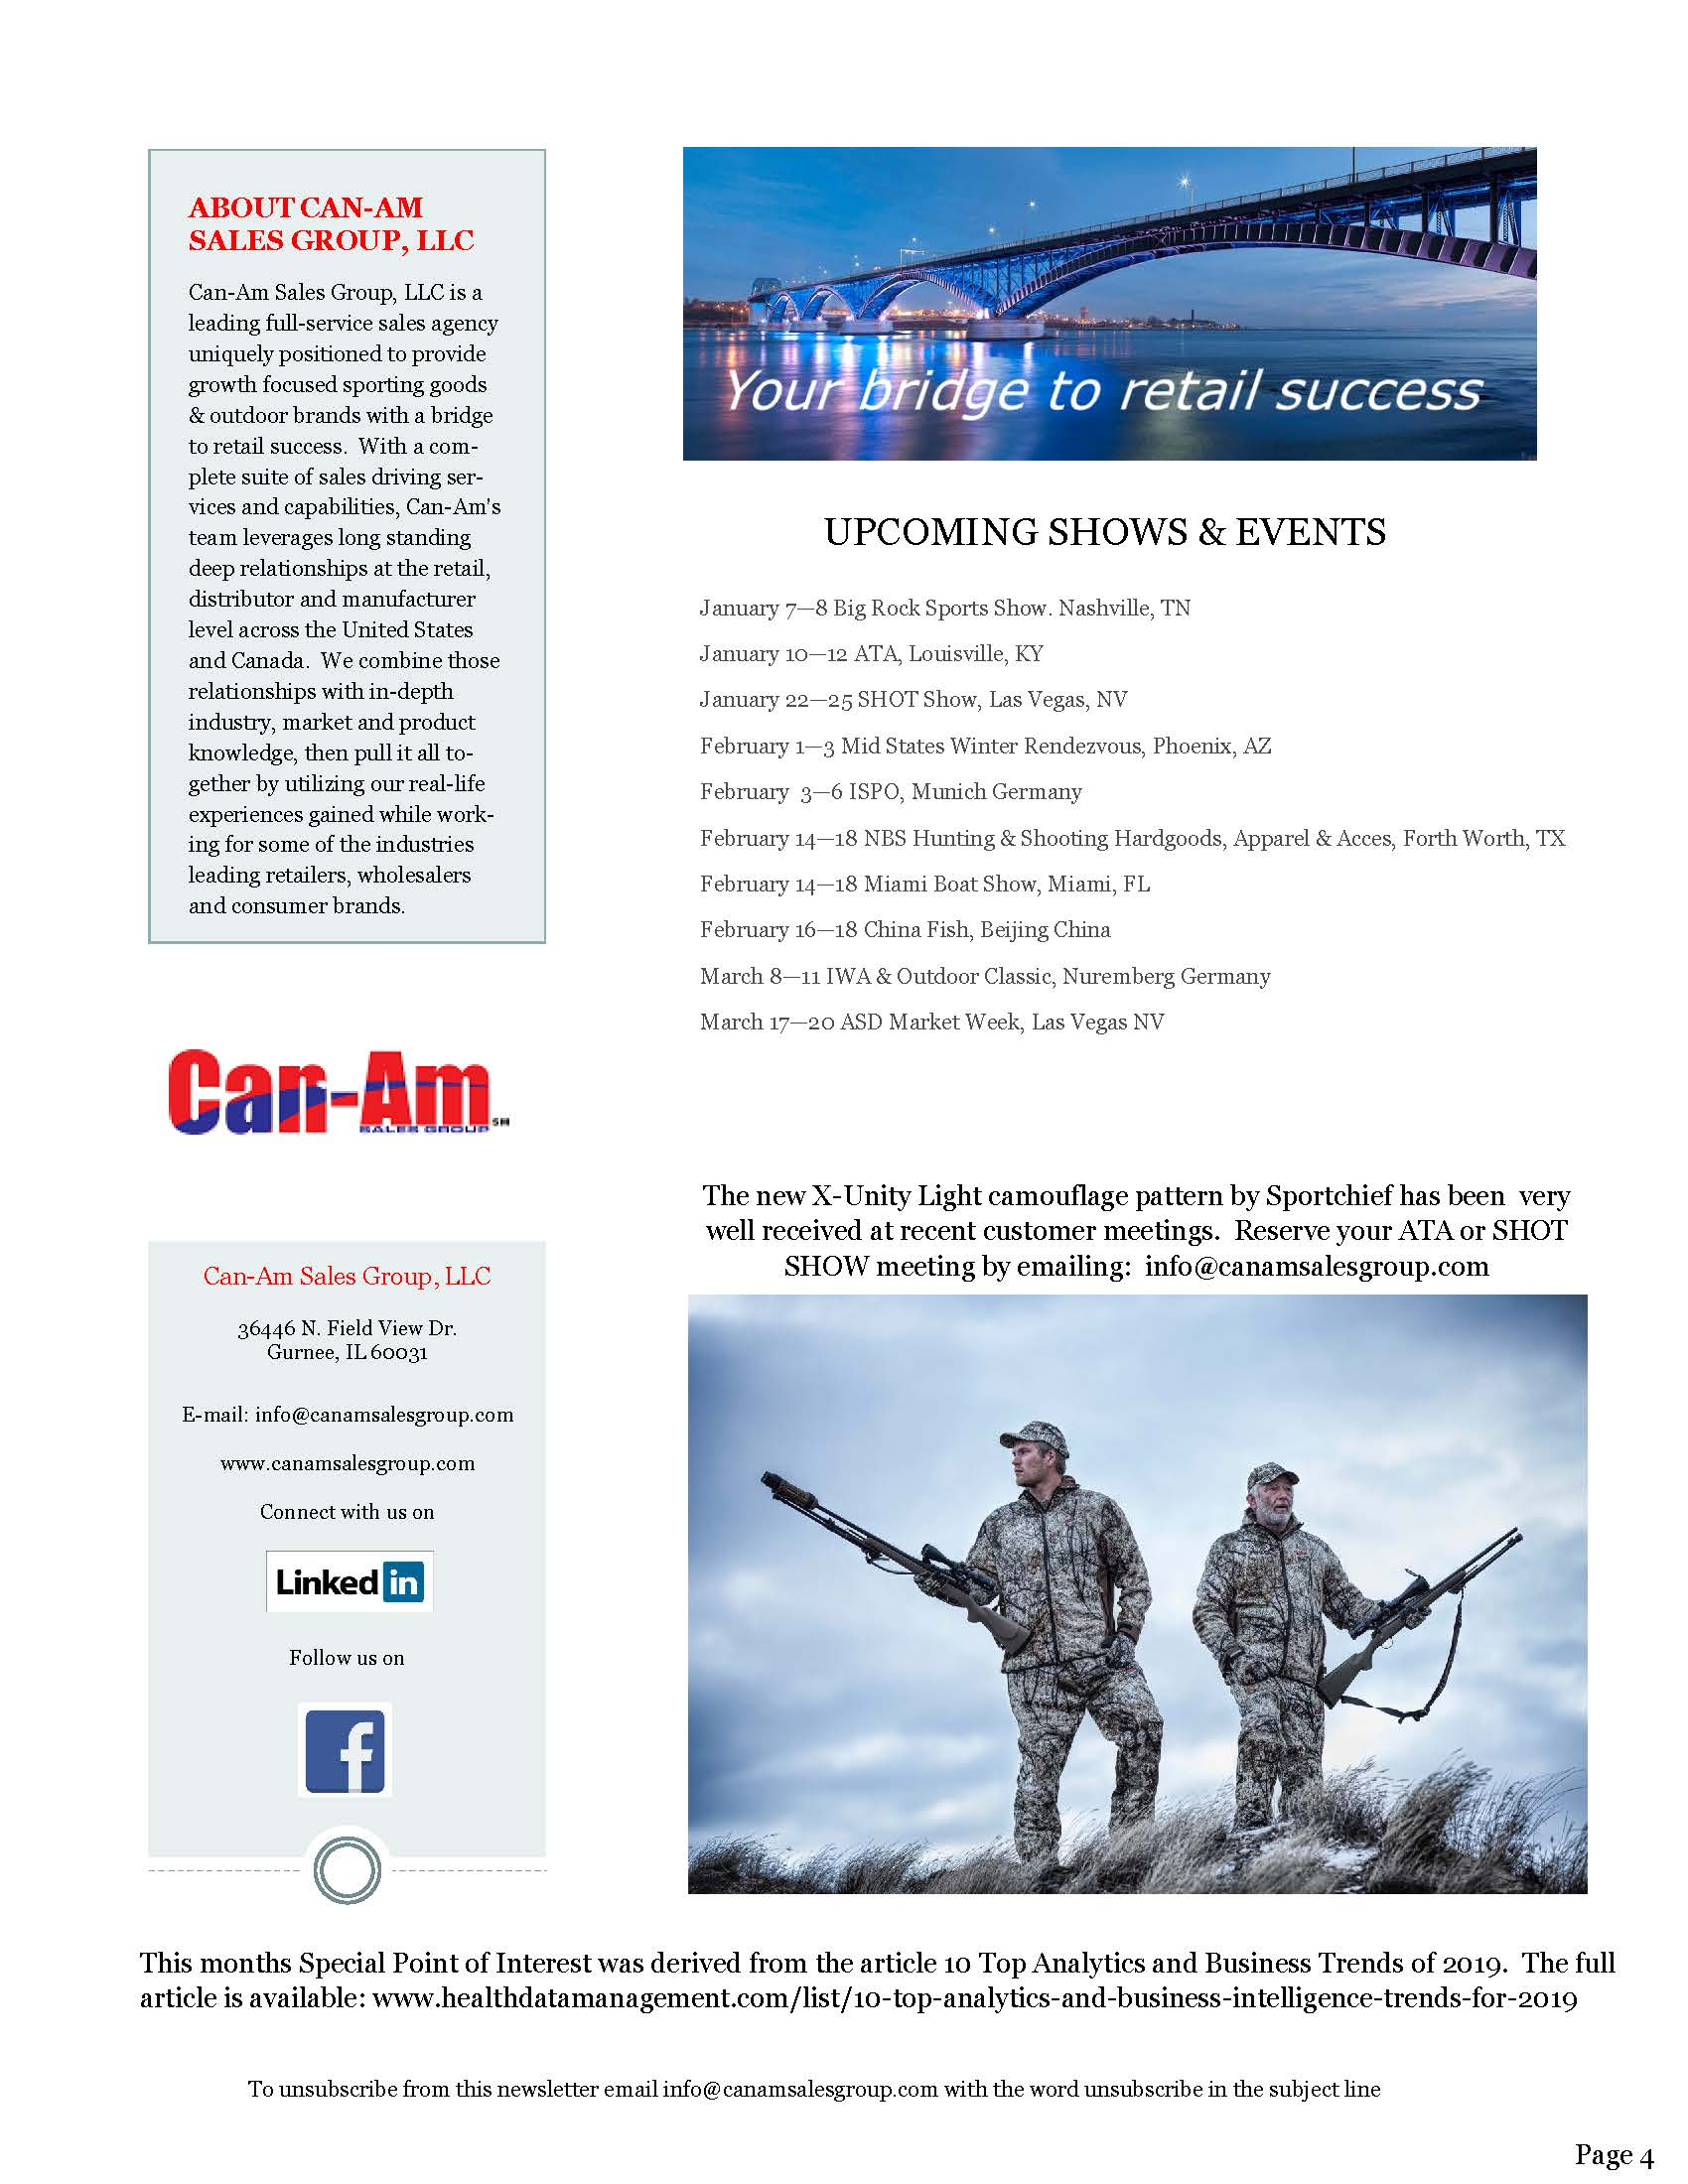 Can-Am Sales Group Newsletter Volume 3-page 4| 1-4-19